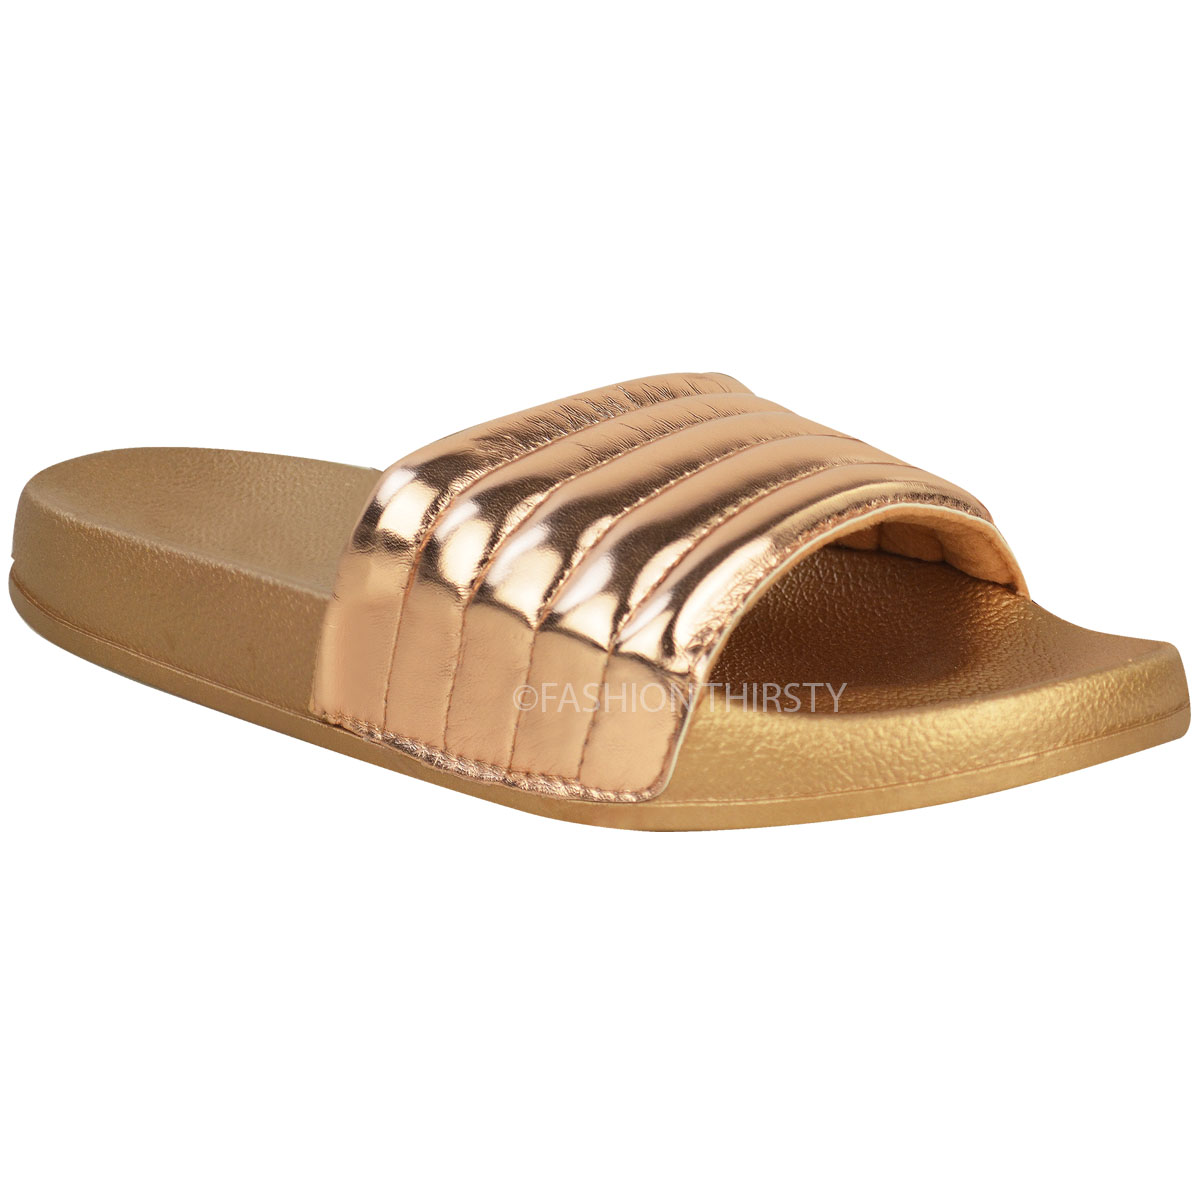 Womens Ladies Comfy Shiny Quilted Rubber Sliders Flats ...